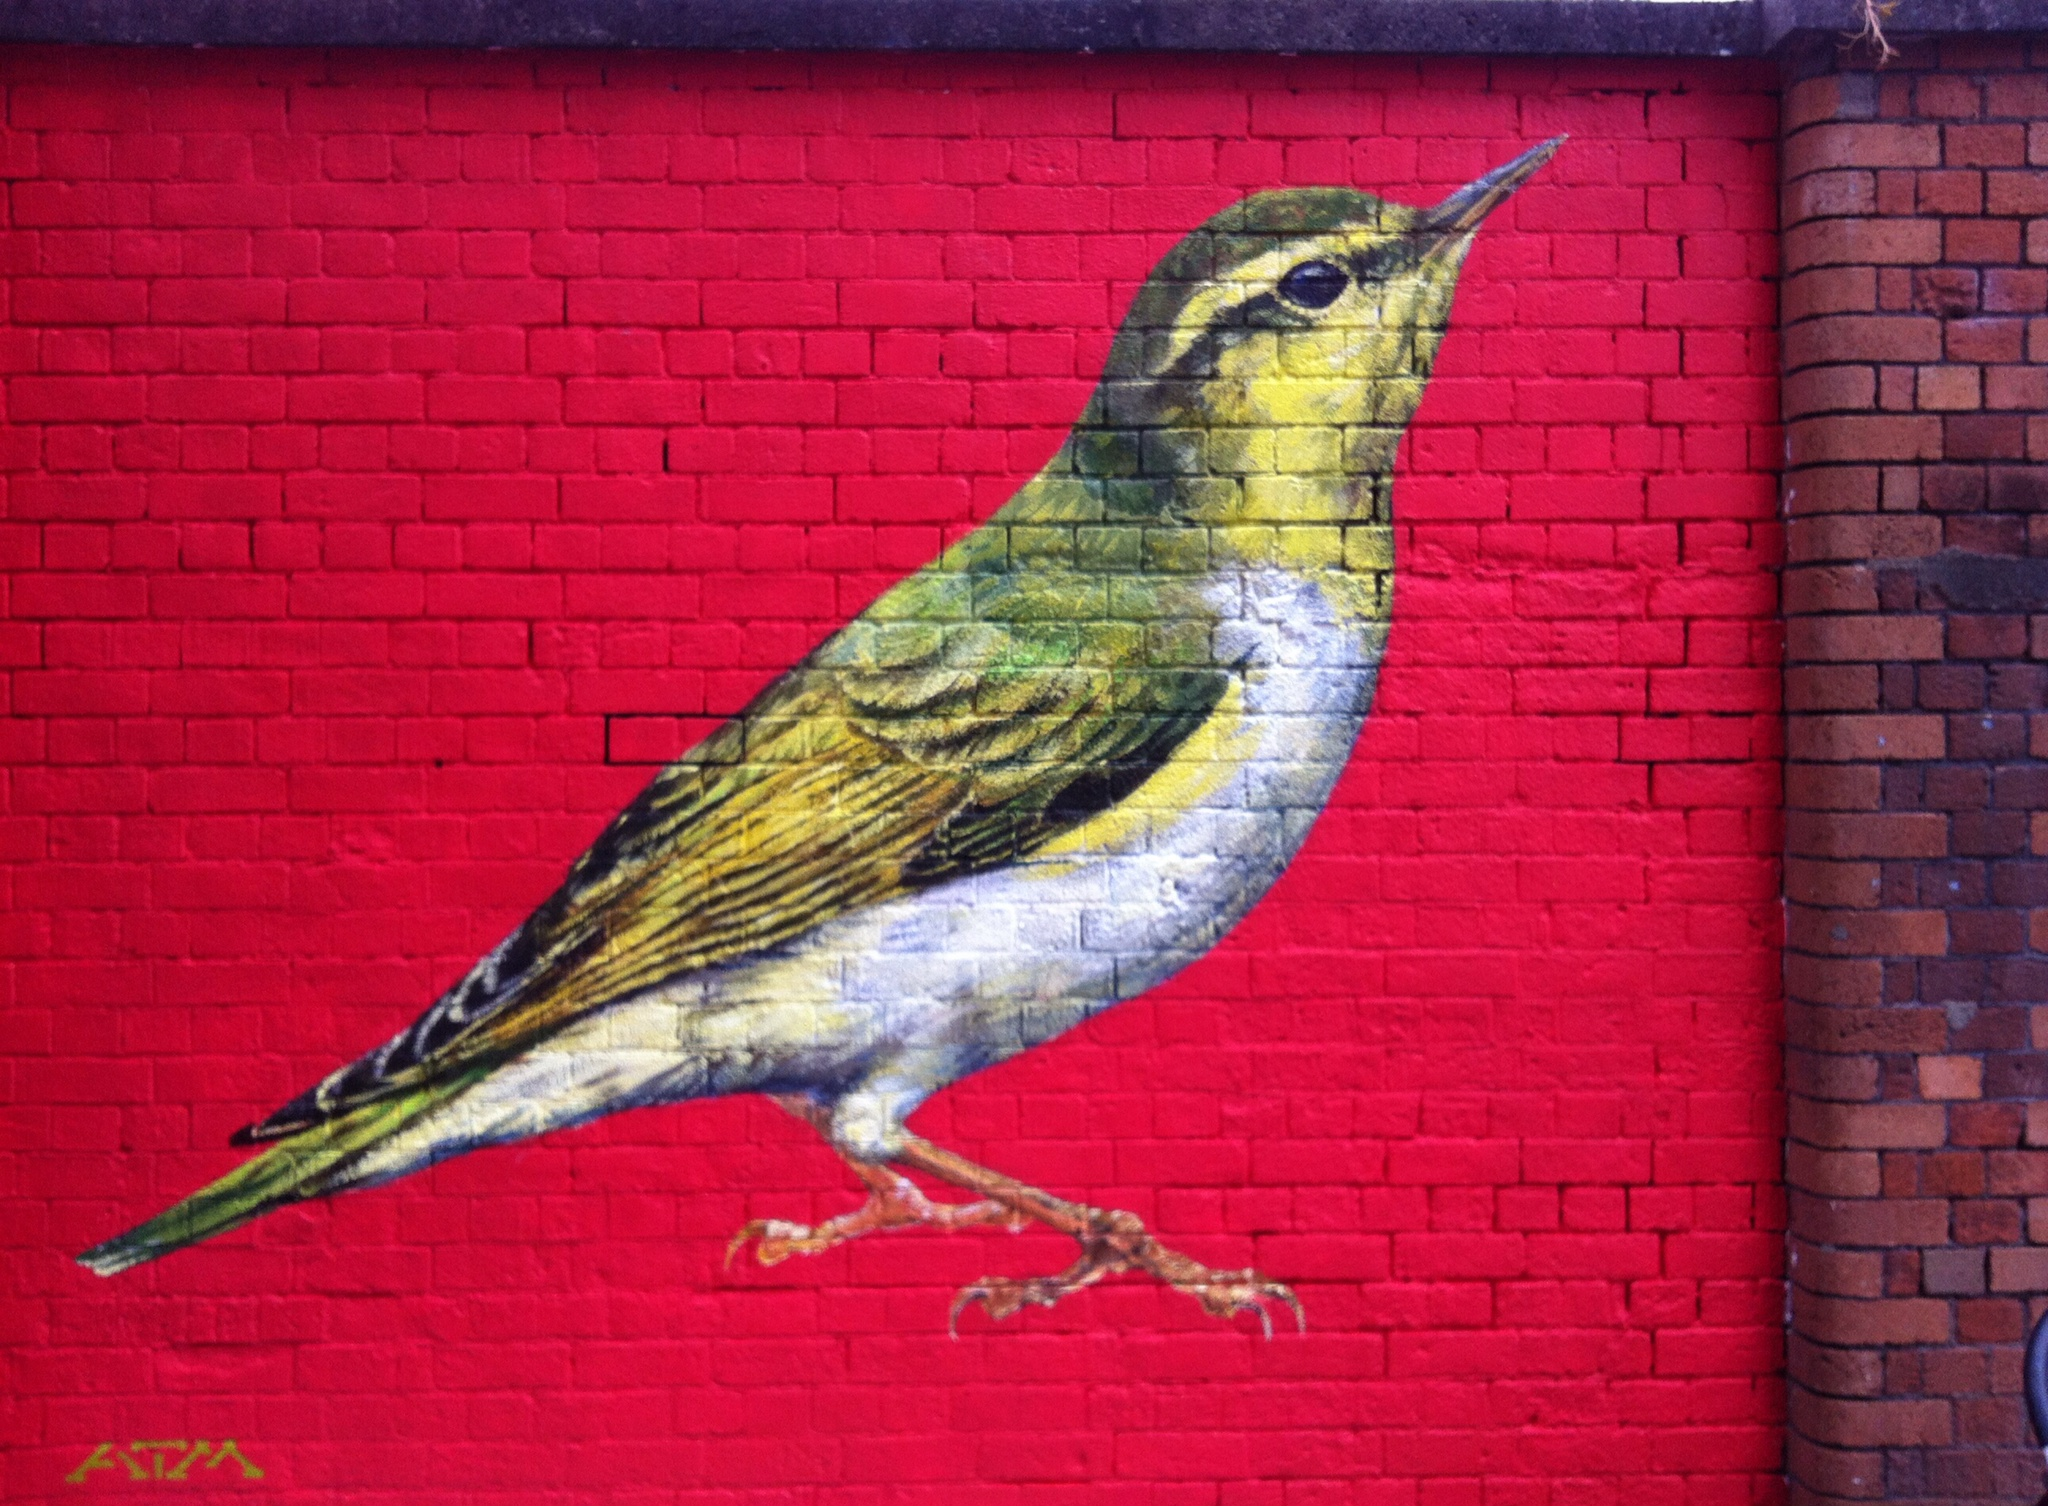 Wood Warbler, part of UpFest street art festival, Bristol.